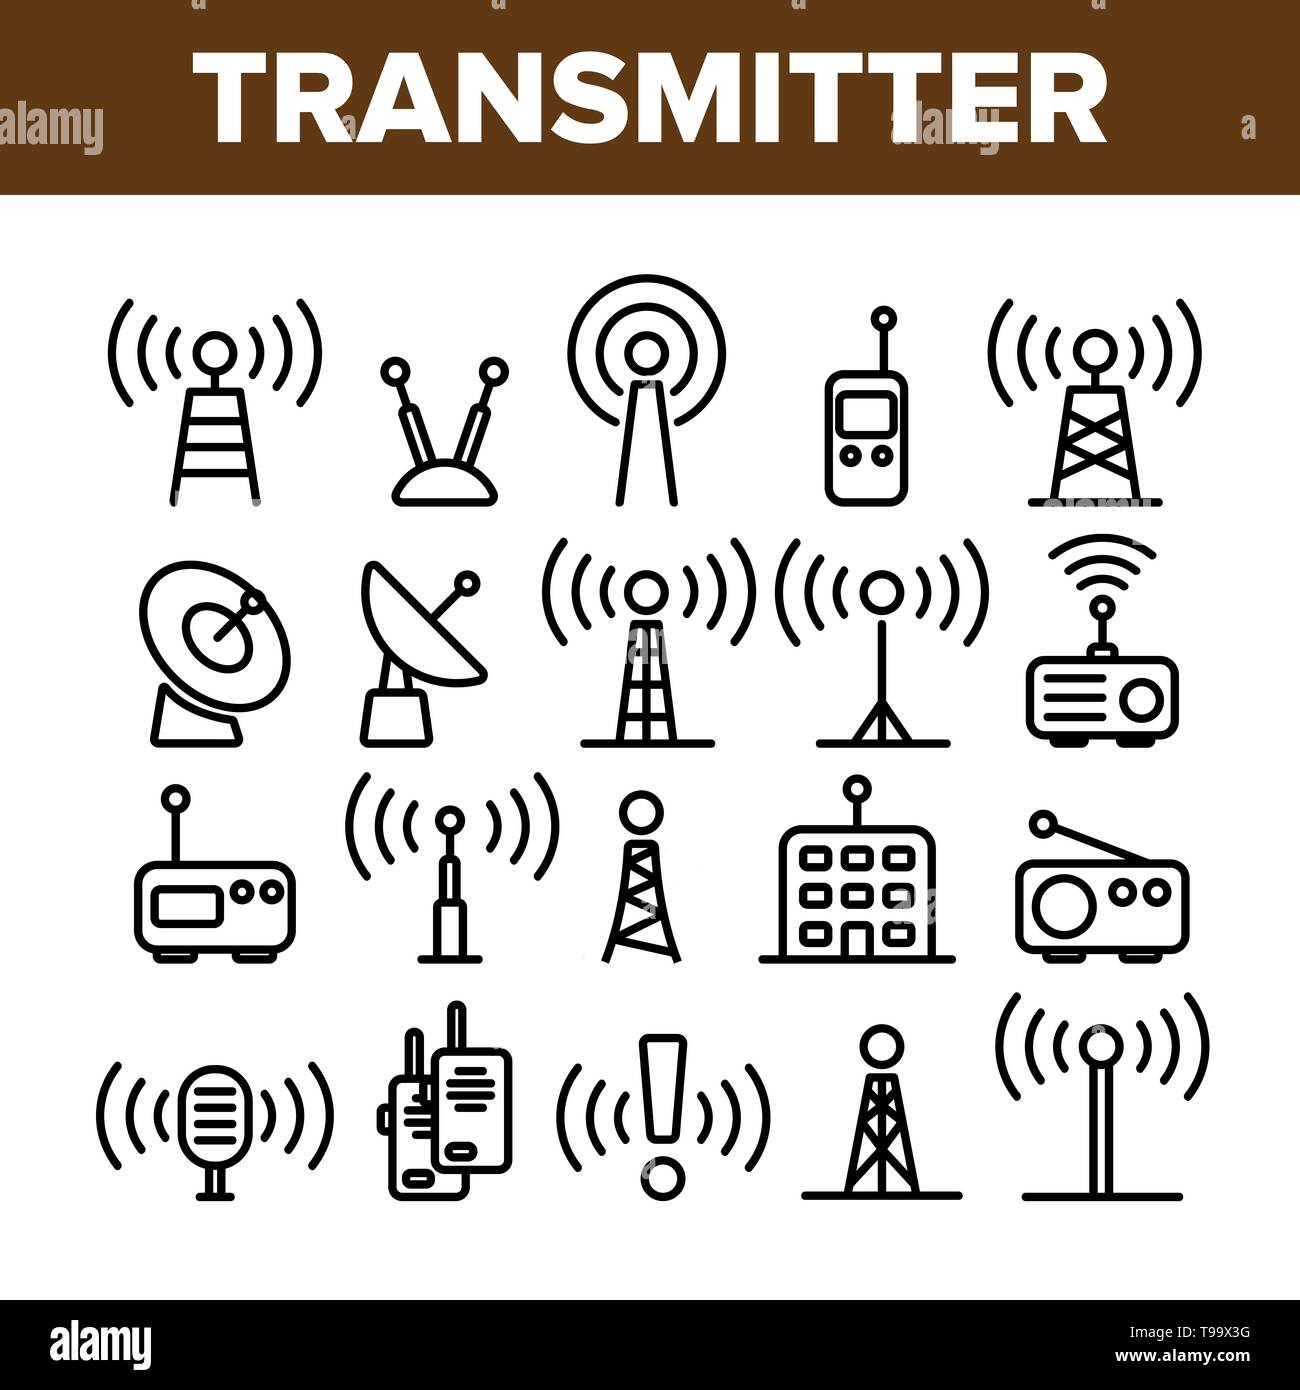 Transmitter, Radio Tower Linear Vector Icons Set